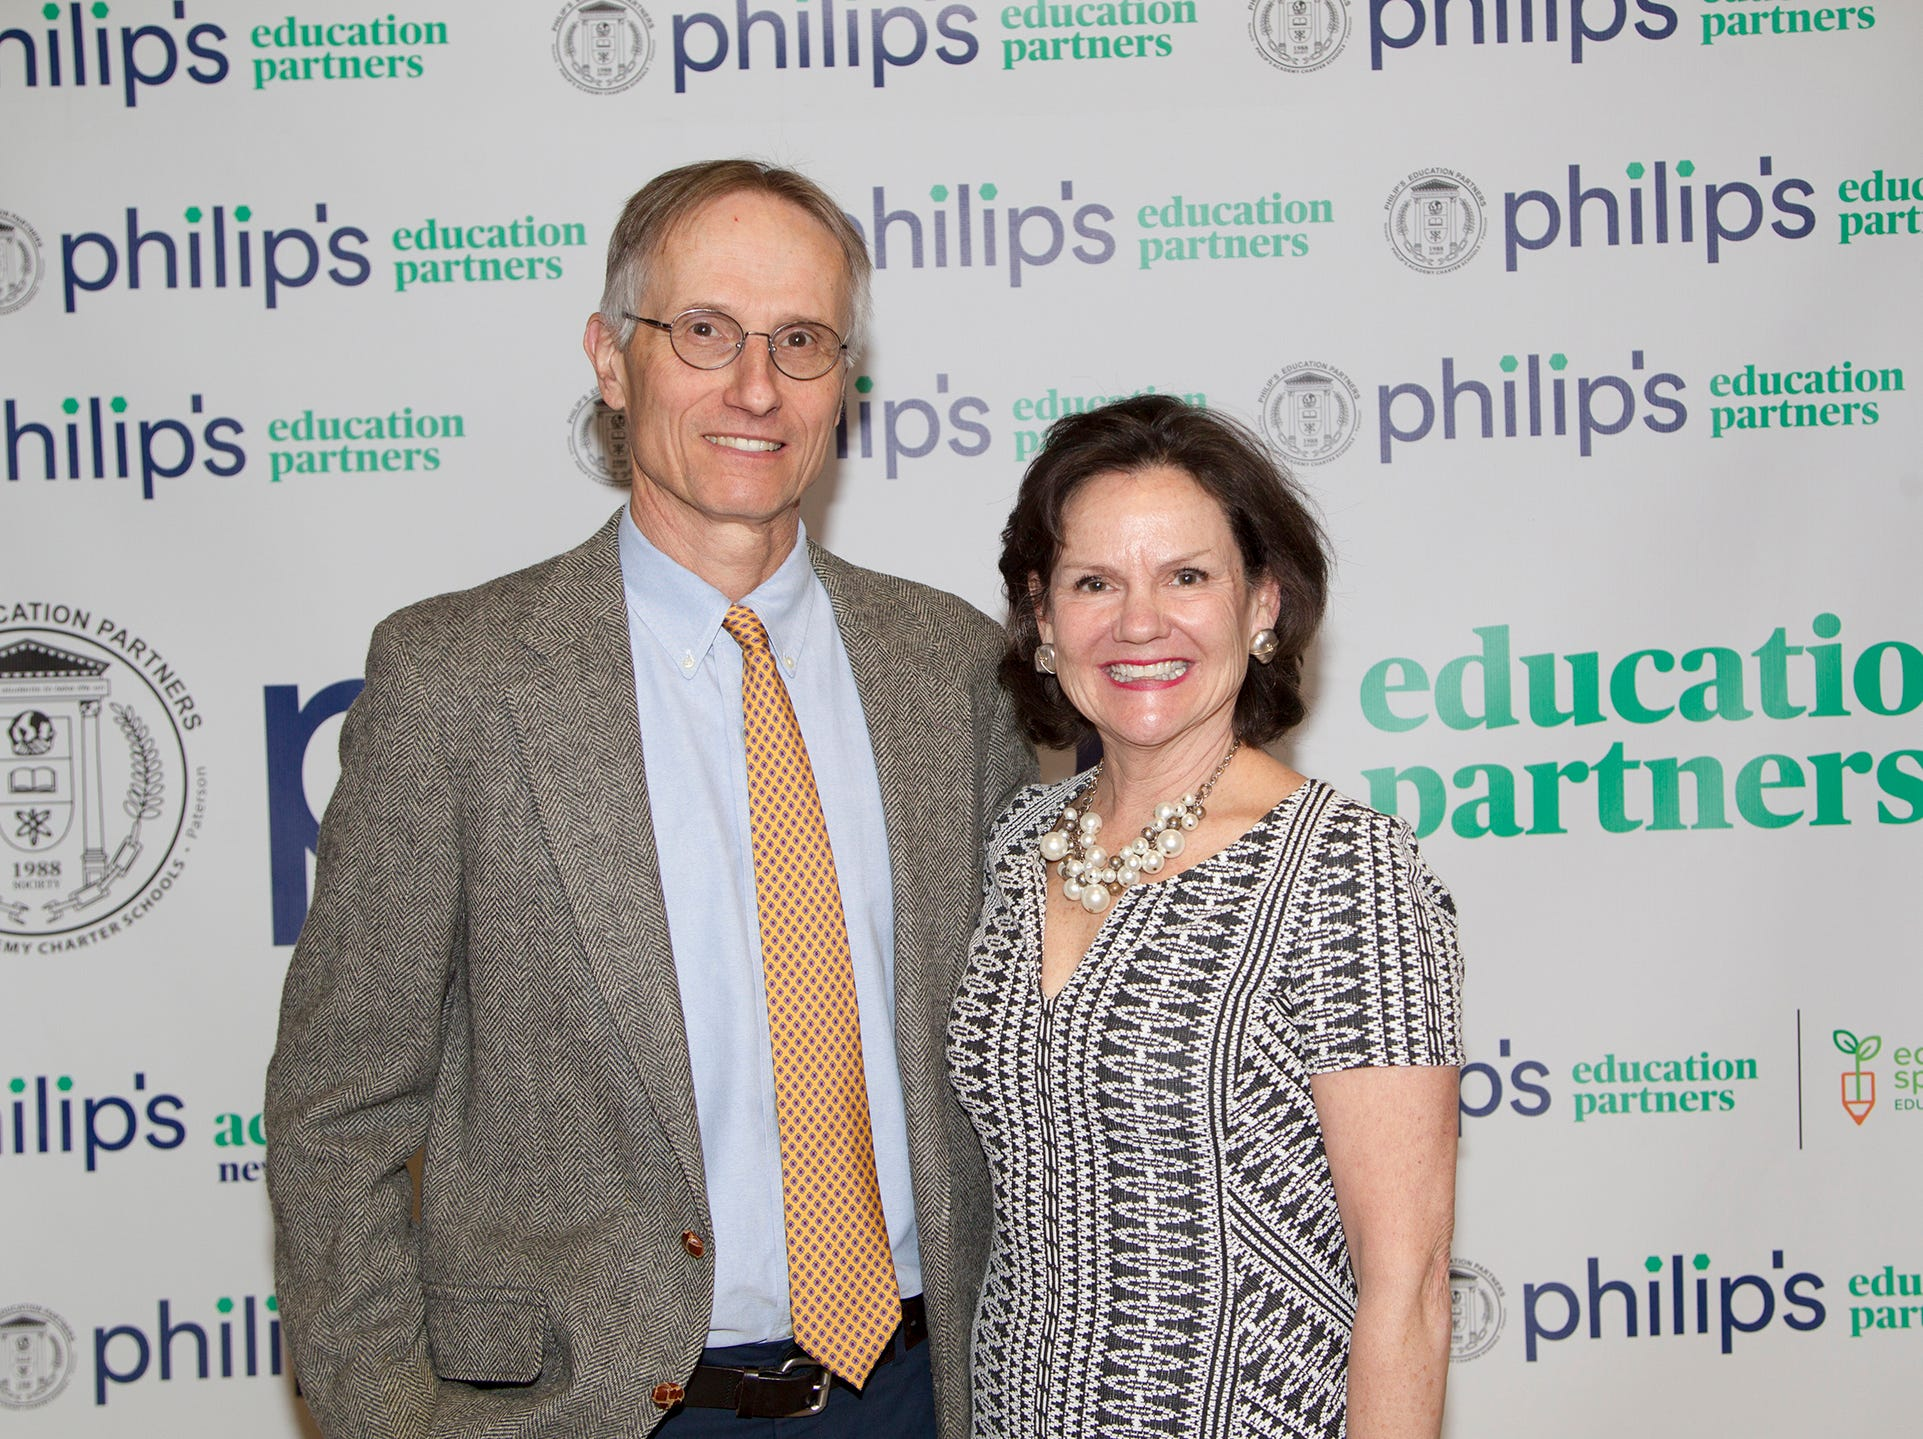 Jon and Sarah Booth. Philip's Education Partners host The Dream Maker 30th anniversary gala at The Mezzanine in Newark 3/29/2019.